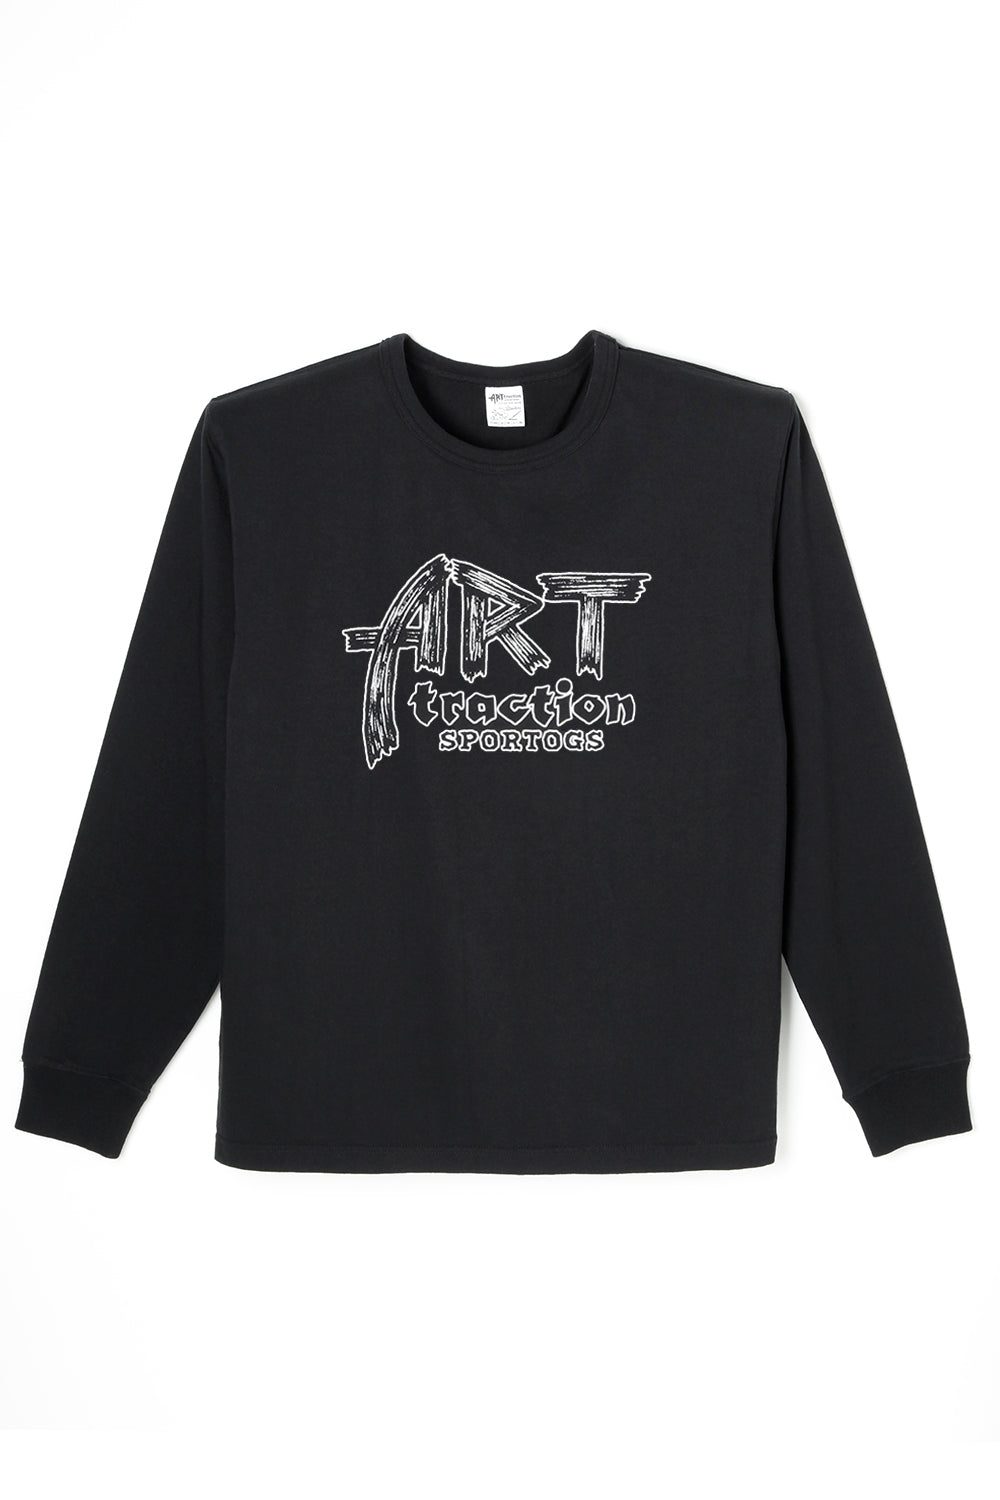 ART041 ARTtraction SPORTOGS L/S Tee -Black-